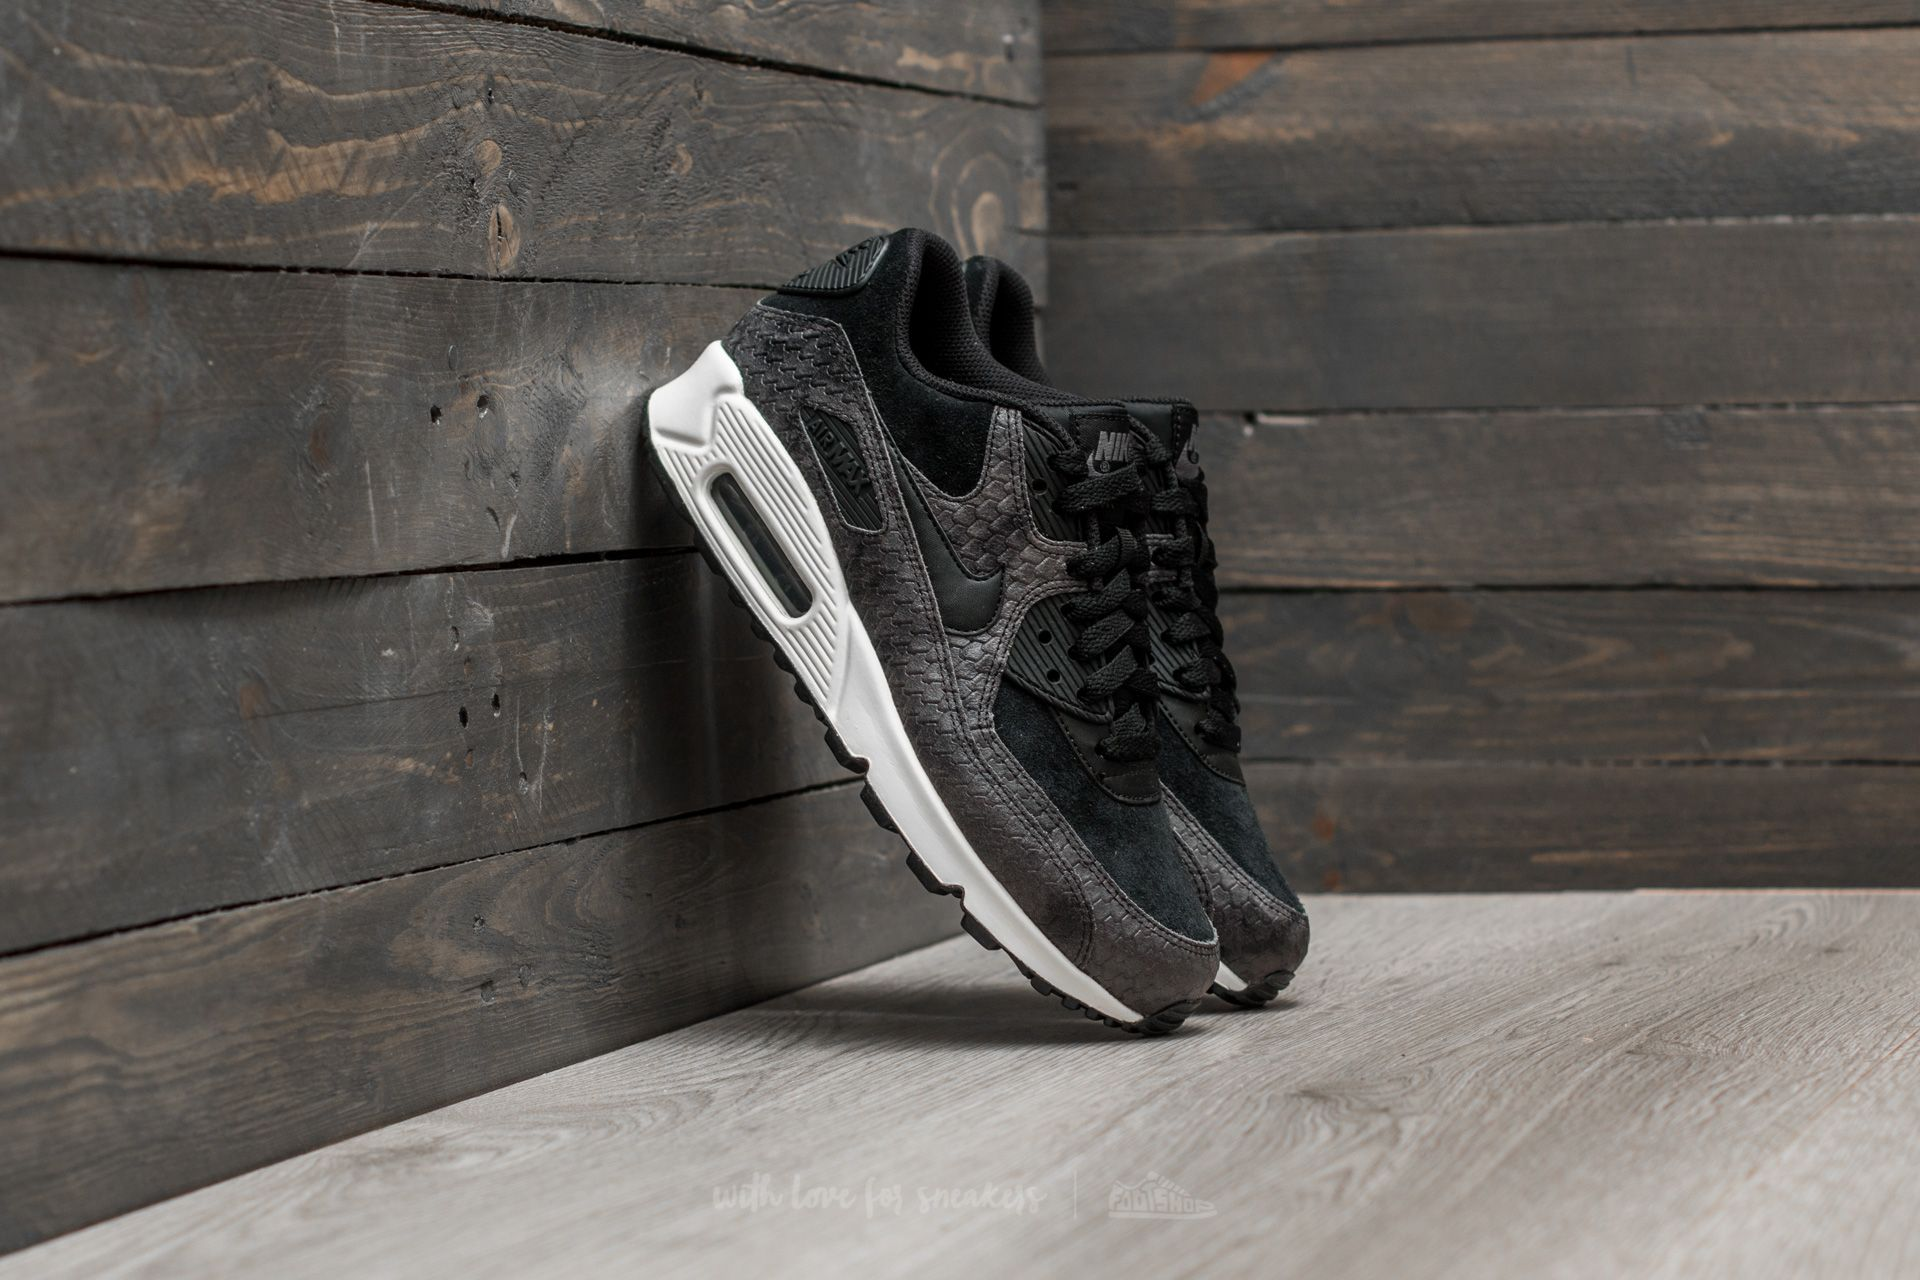 quality design 24fa9 7d8c2 Nike Wmns Air Max 90 Premium Black/ Black-Sail-Dark Grey | Footshop